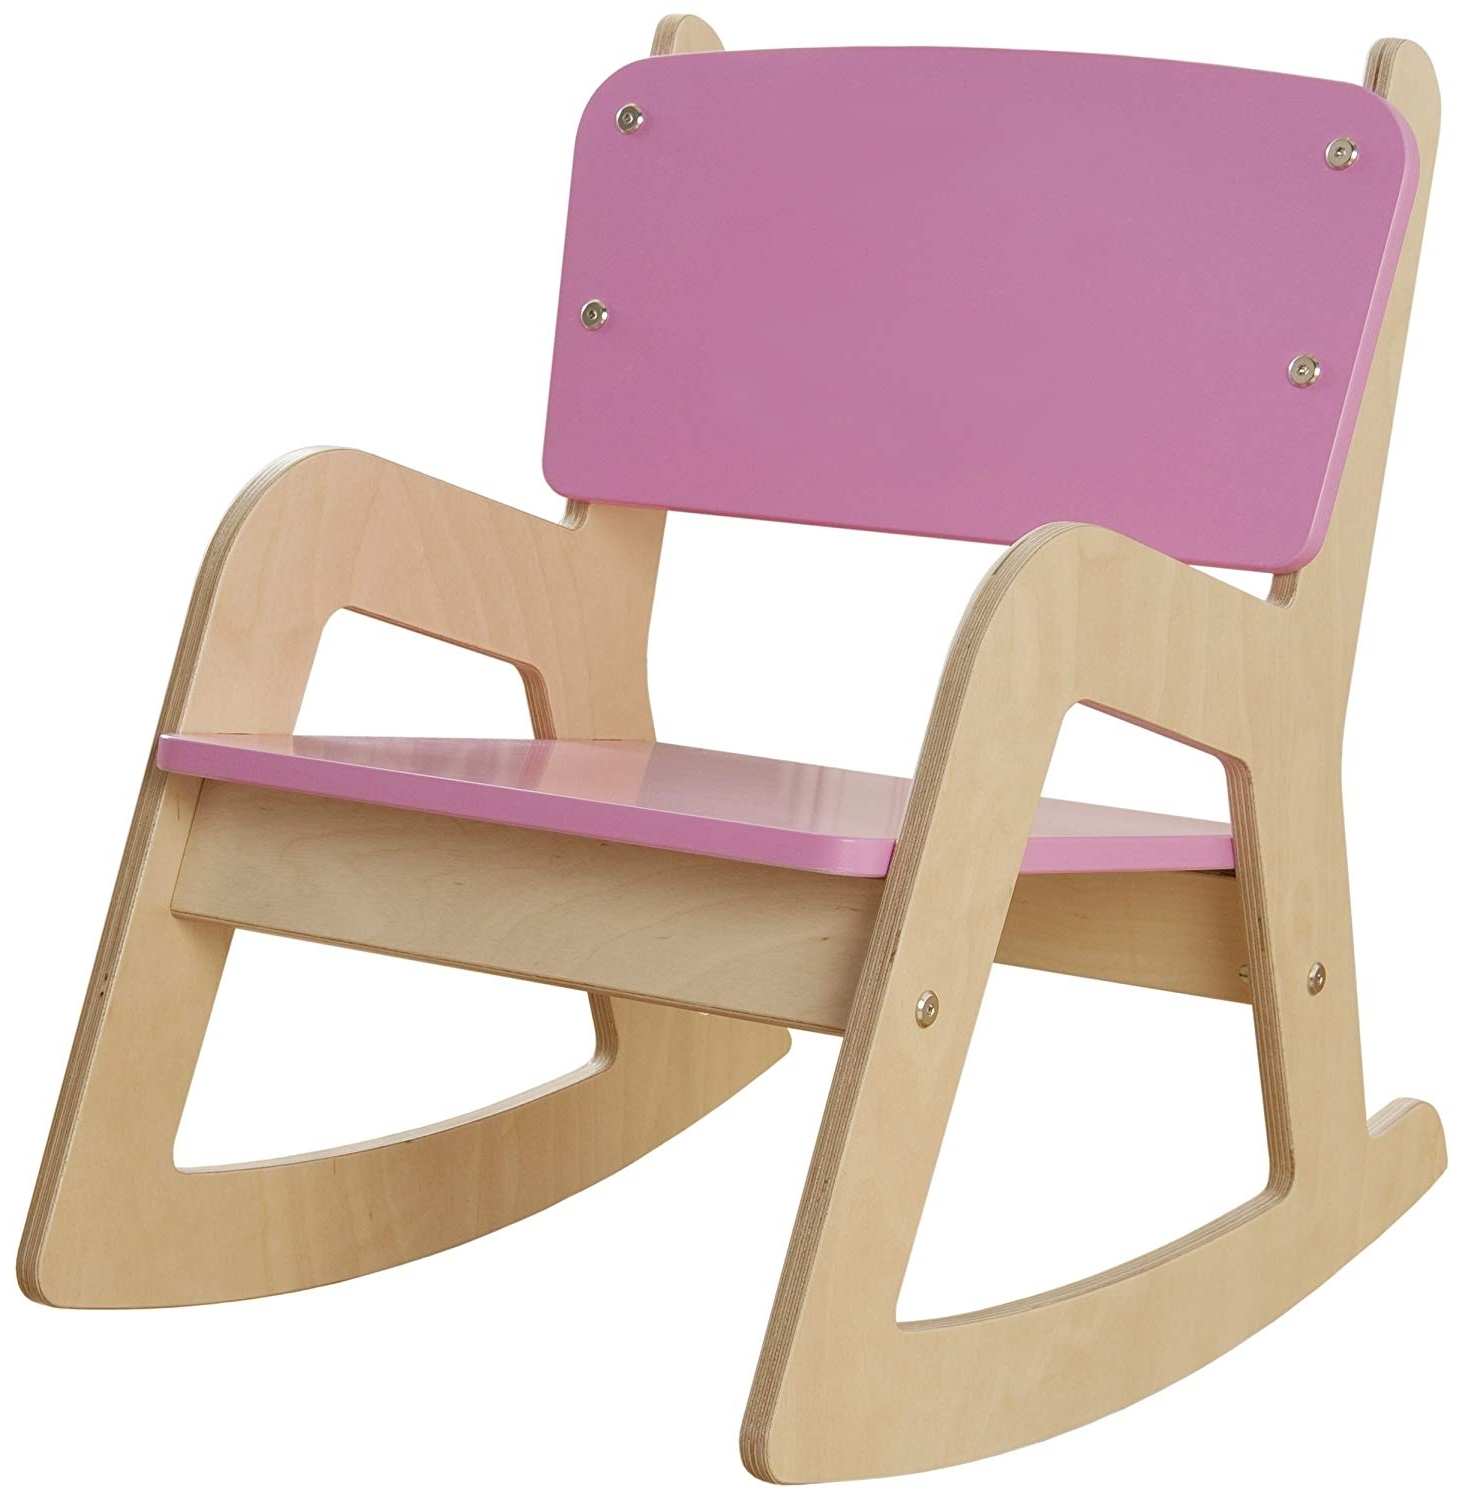 Rocking Chairs For Toddlers Within Preferred Millhouse Children's Wooden Rocking Chair (Pink): Amazon.co (View 5 of 15)